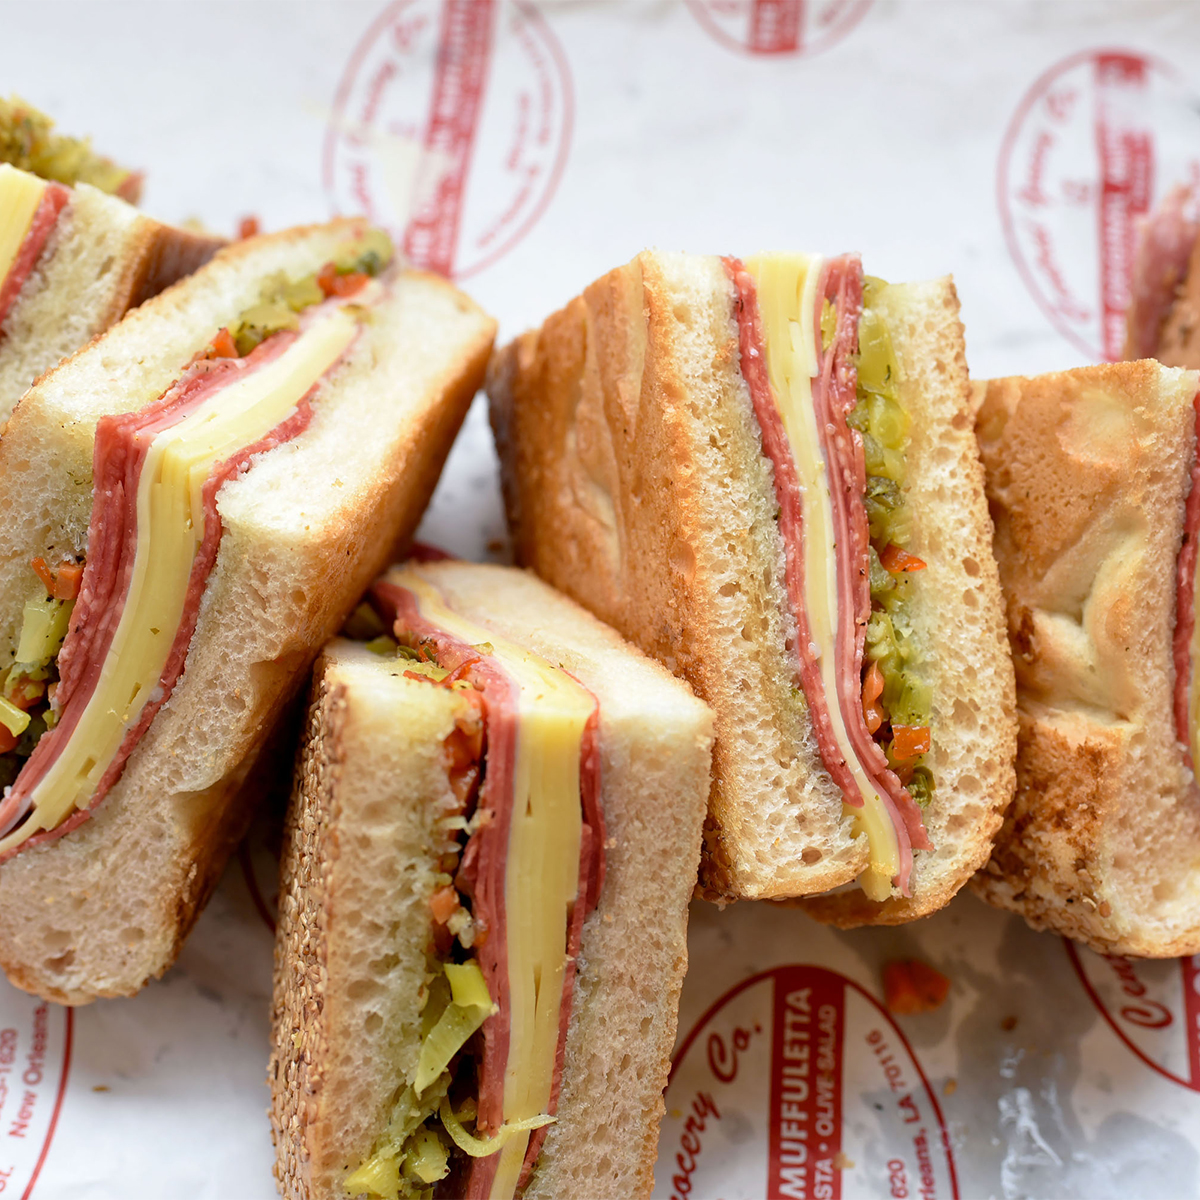 goldbelly meal order sandwiches